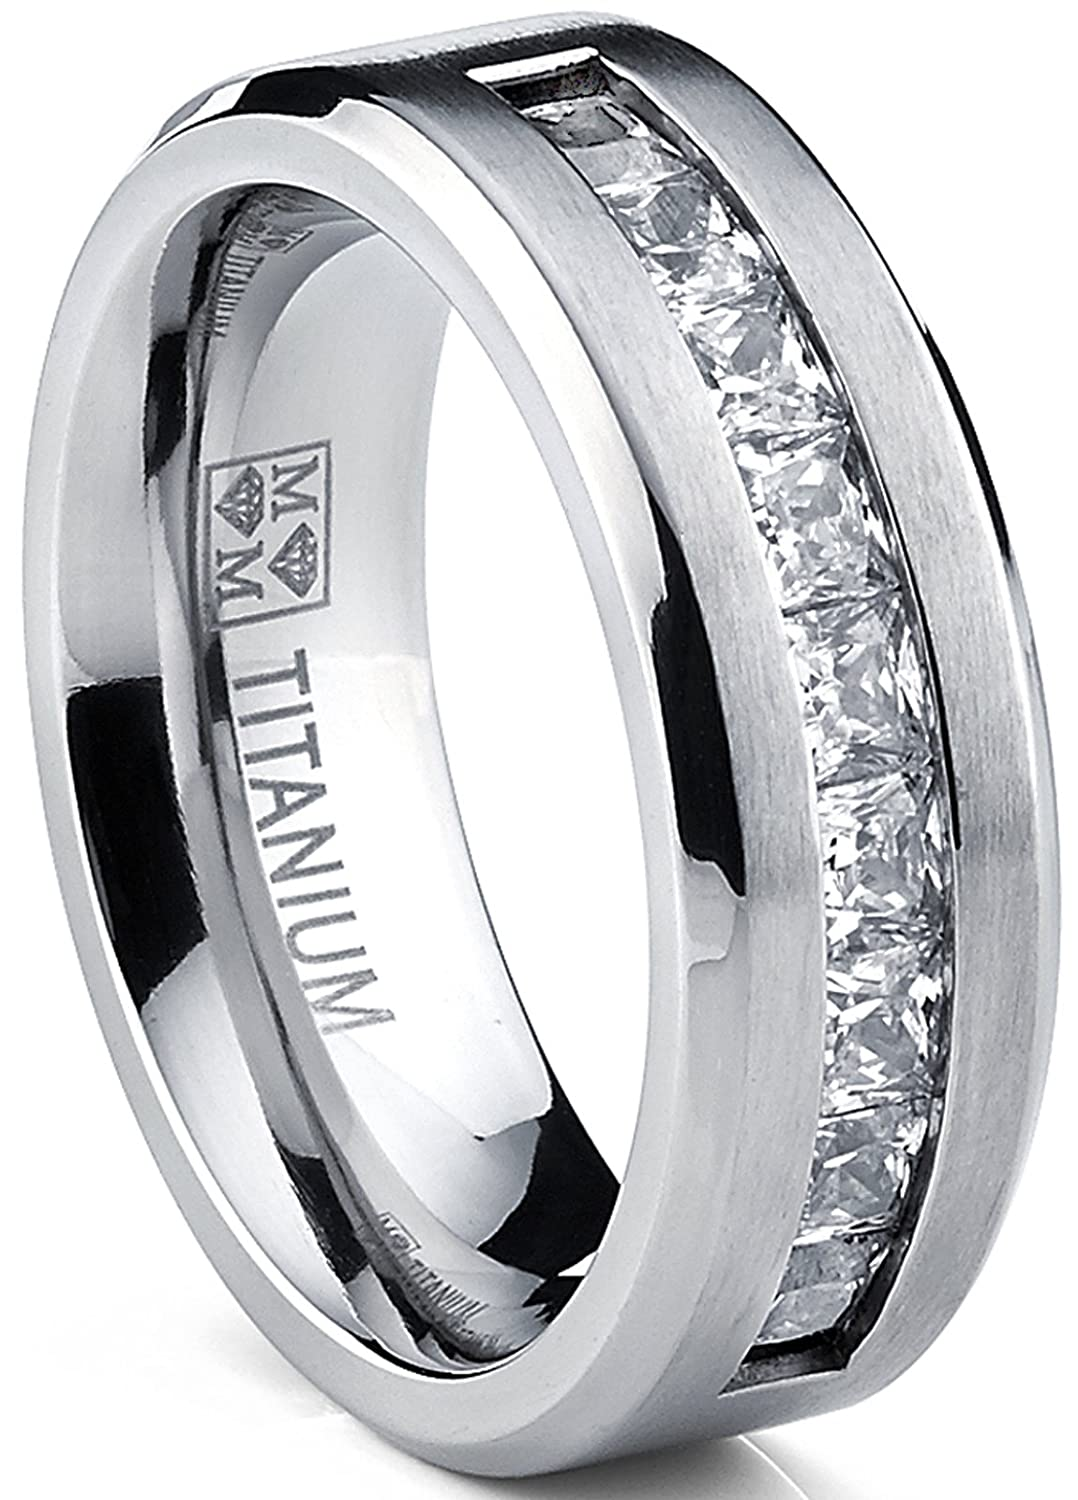 Metal Masters Co. Titanium Men's Wedding Band Engagement Ring with 9 large Princess Cut Cubic Zirconia TIR-1131